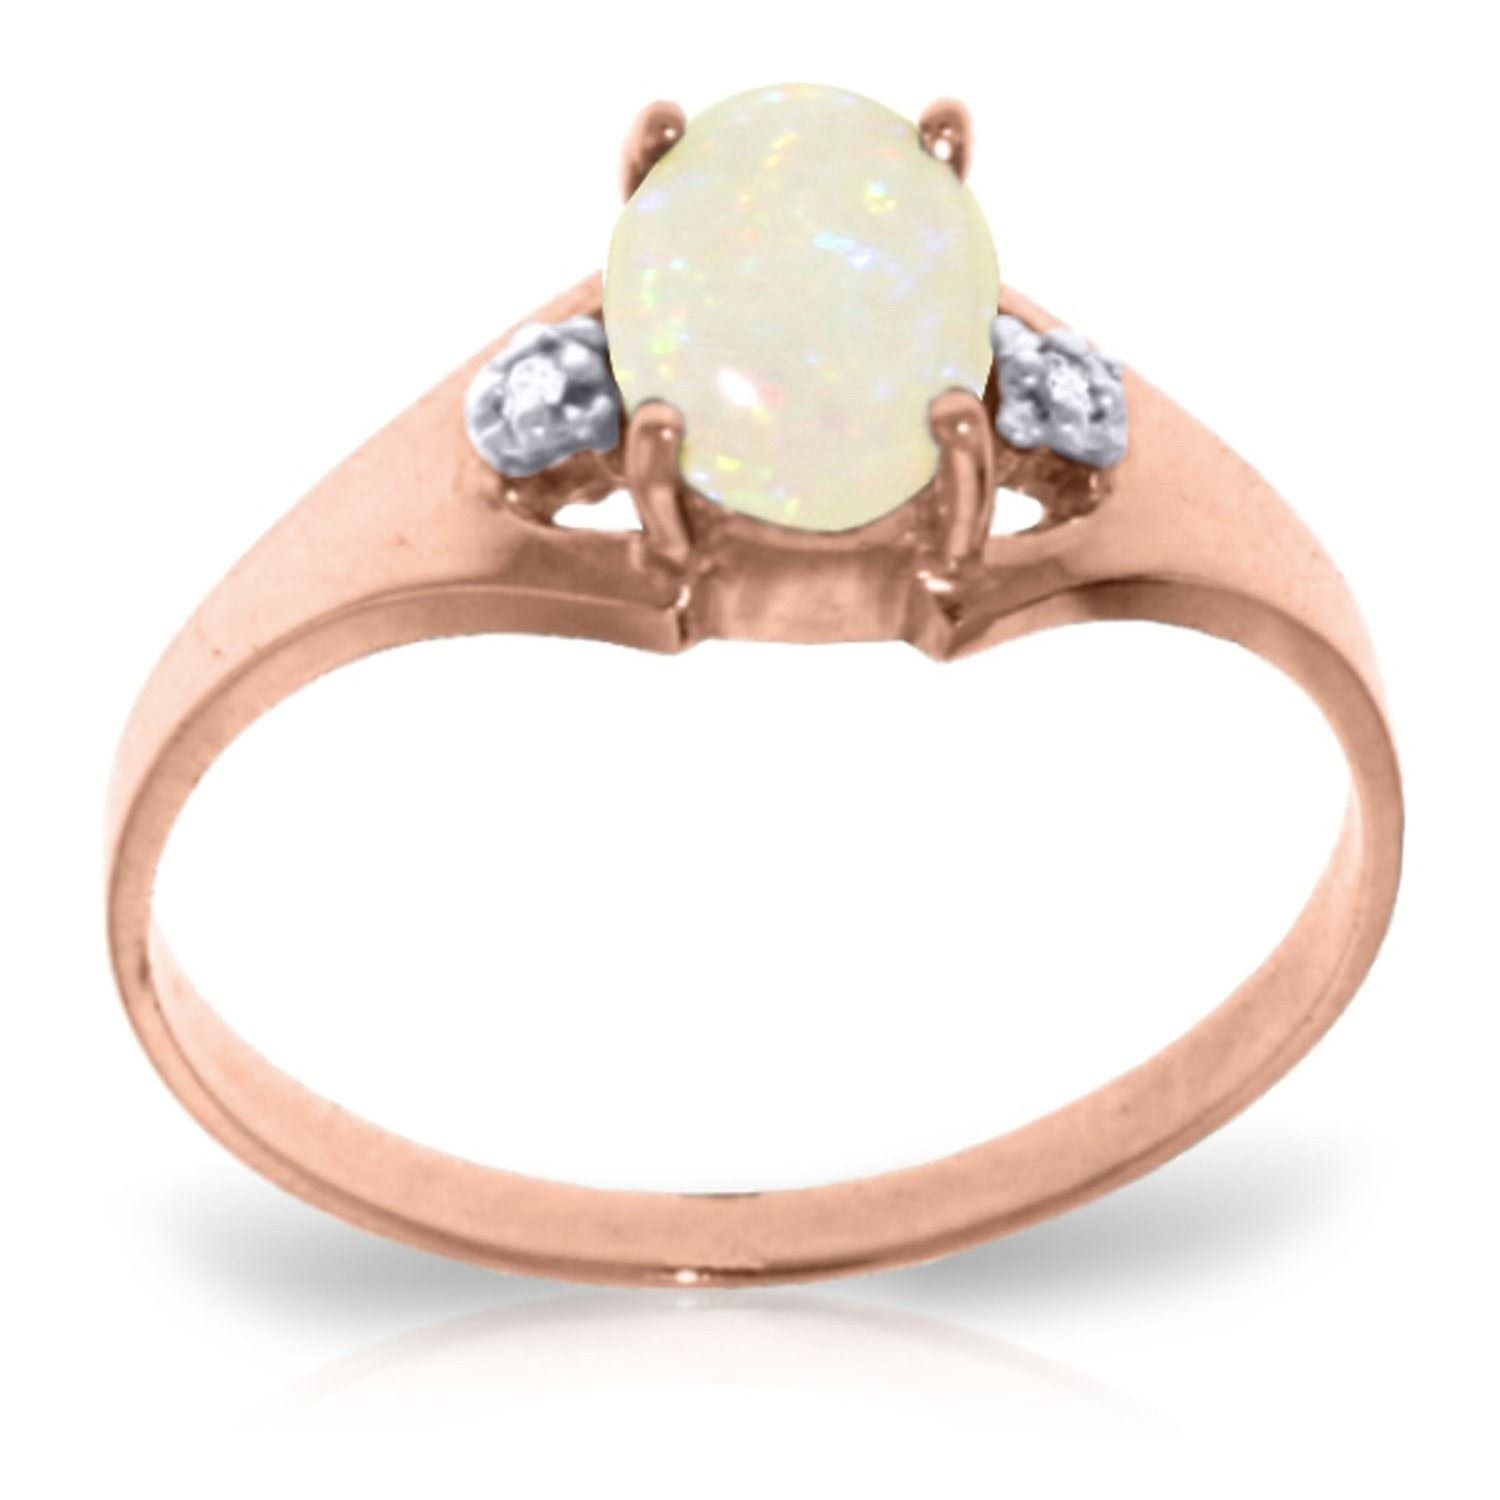 ALARRI 0.46 Carat 14K Solid Rose Gold Rings Natural Diamond Opal With Ring Size 11